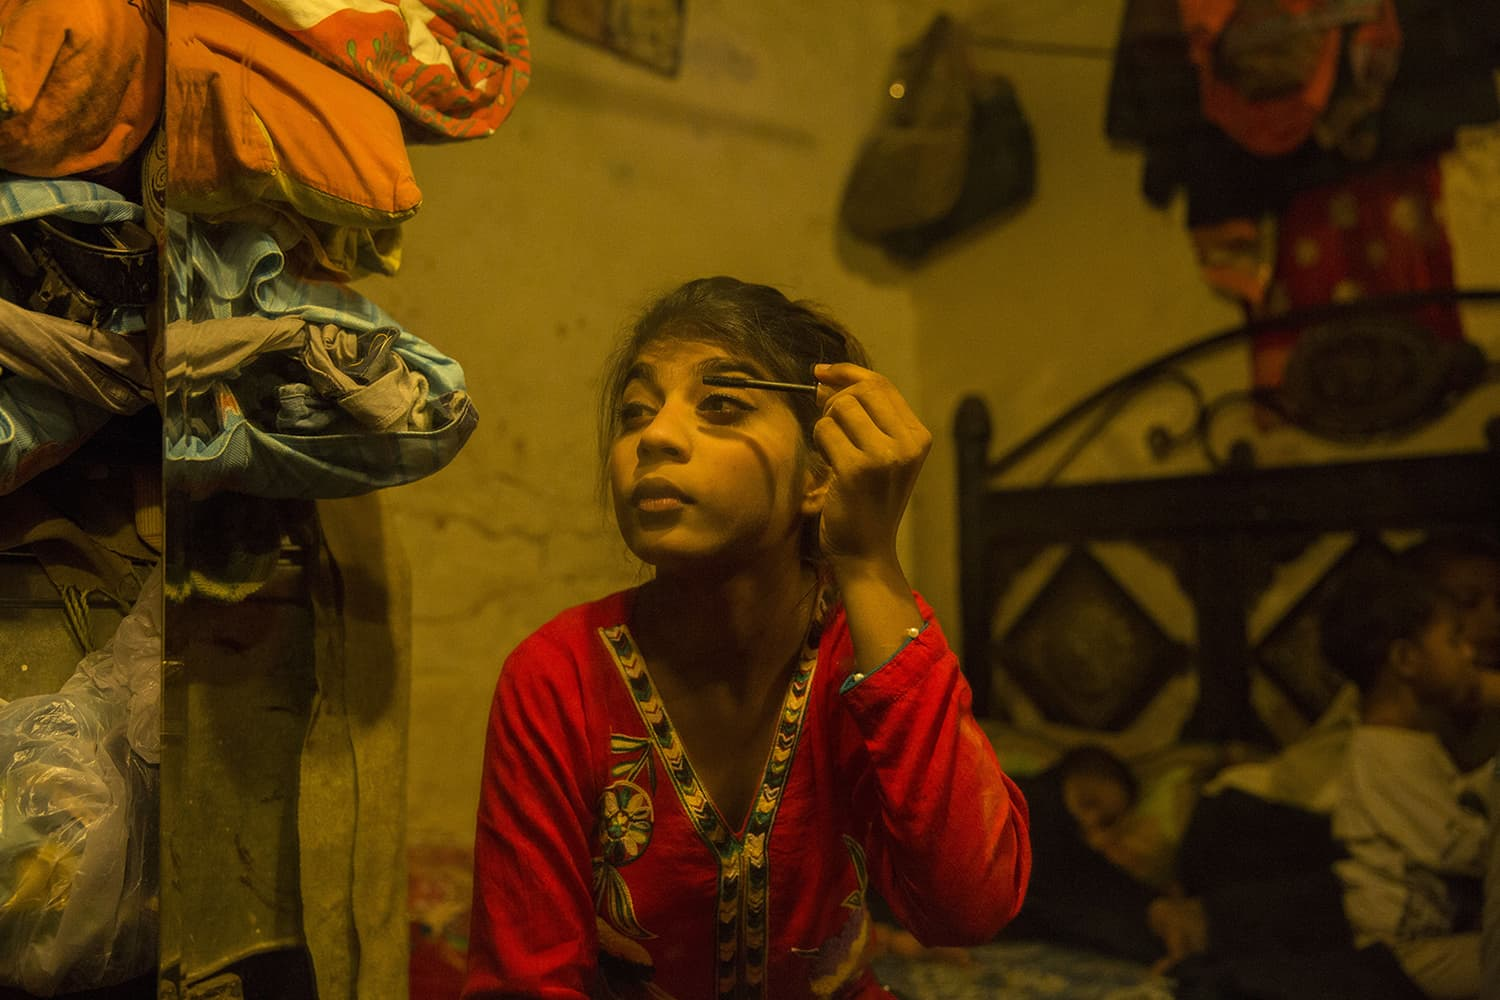 15-year-old Samantha puts on make-up as the family gets ready to go to the nearby park, April 29, 2020, in Islamabad.